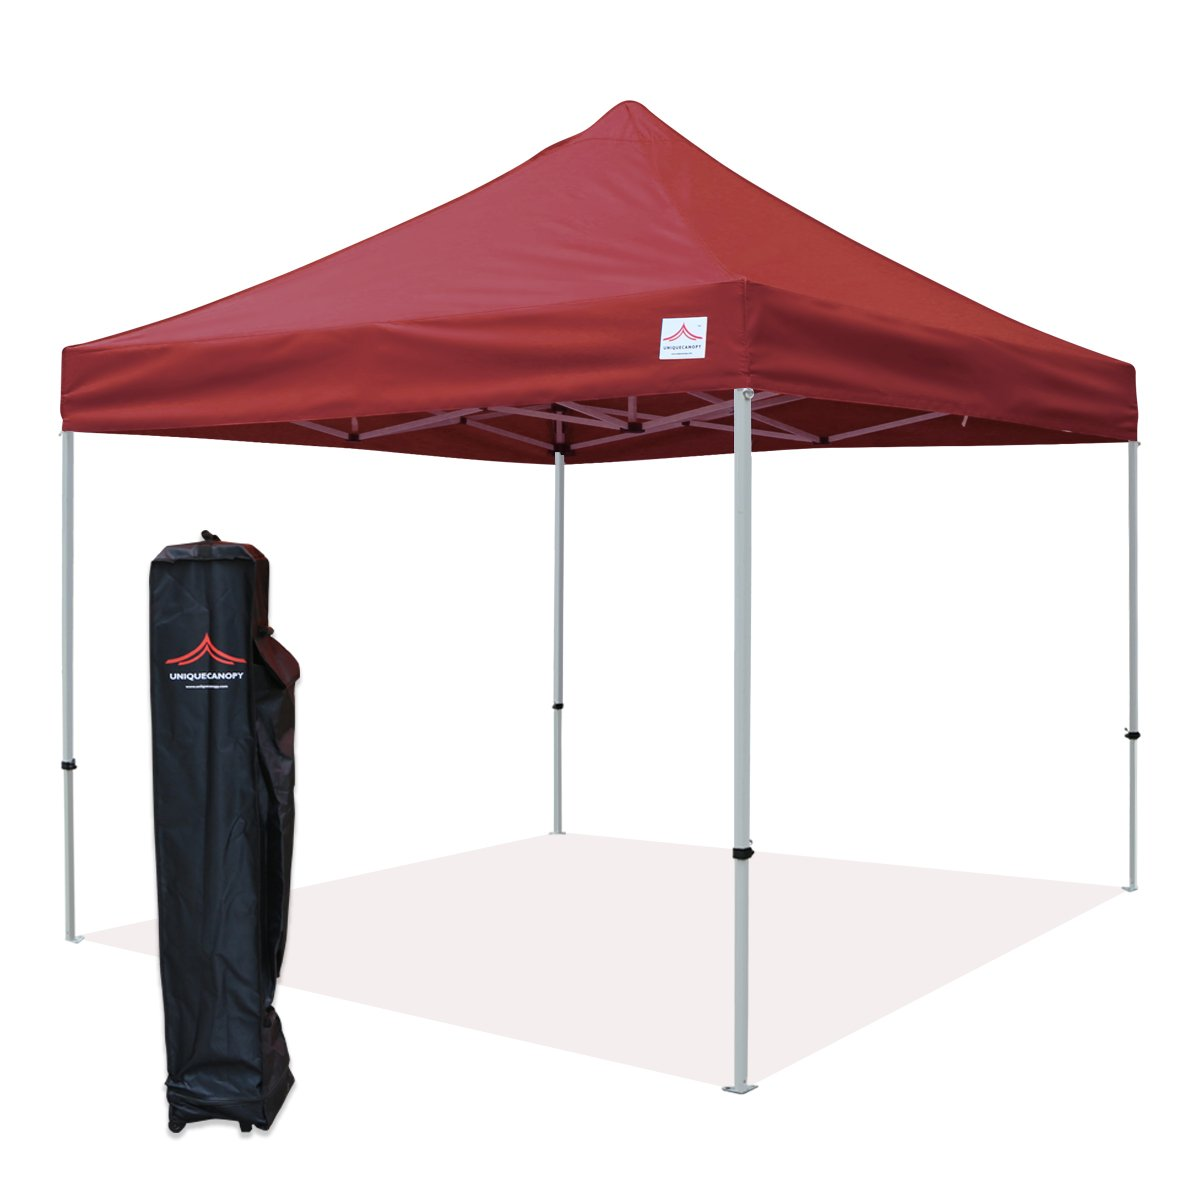 UNIQUECANOPY 10x10 Ez Pop up Canopy Tents for Parties Outdoor Portable Instant Folded Commercial Popup Shelter, with Wheeled Carrying Bag Wine Red